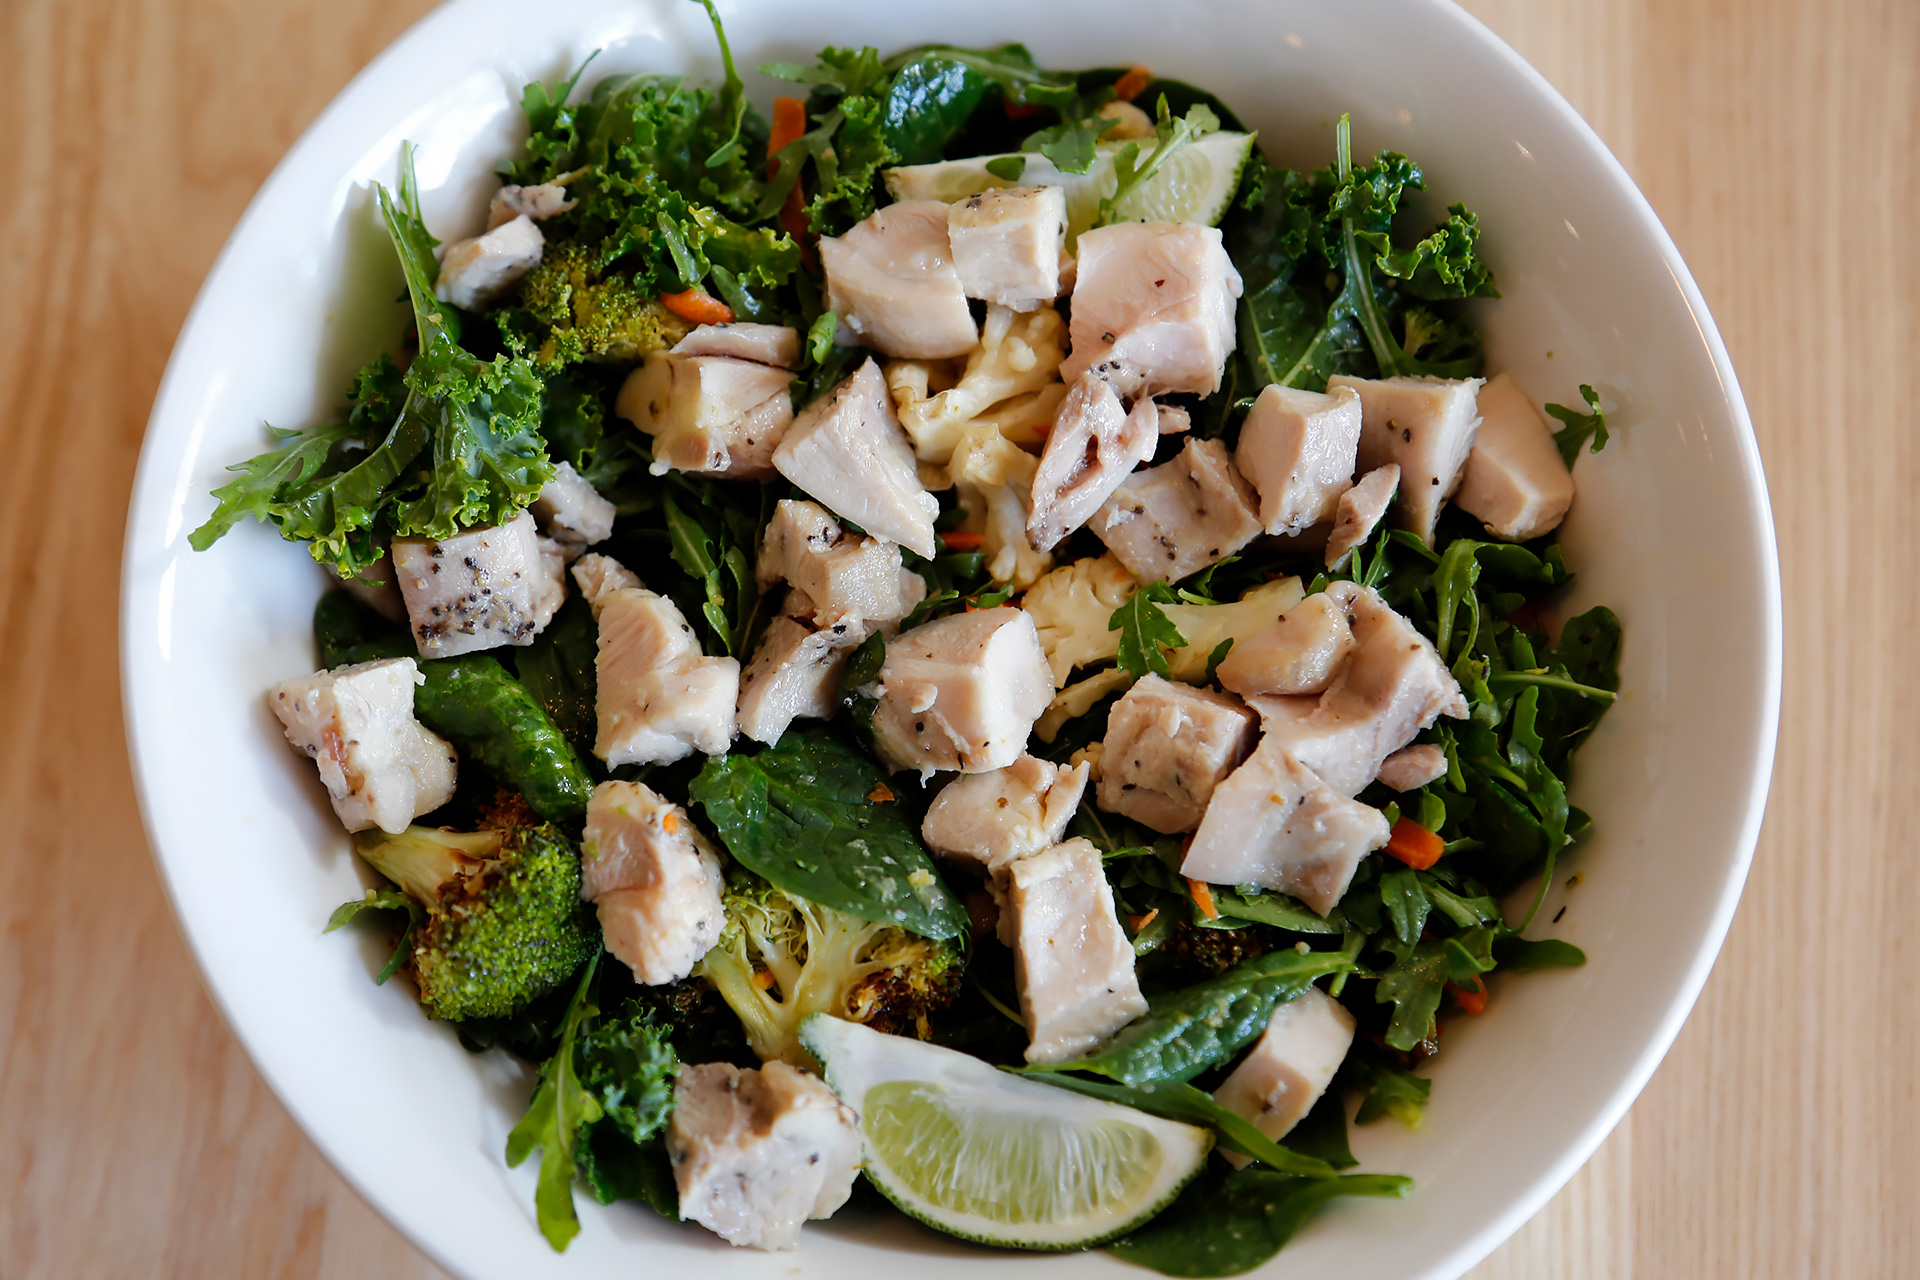 Roasted Brassica Salad with pastured chicken.